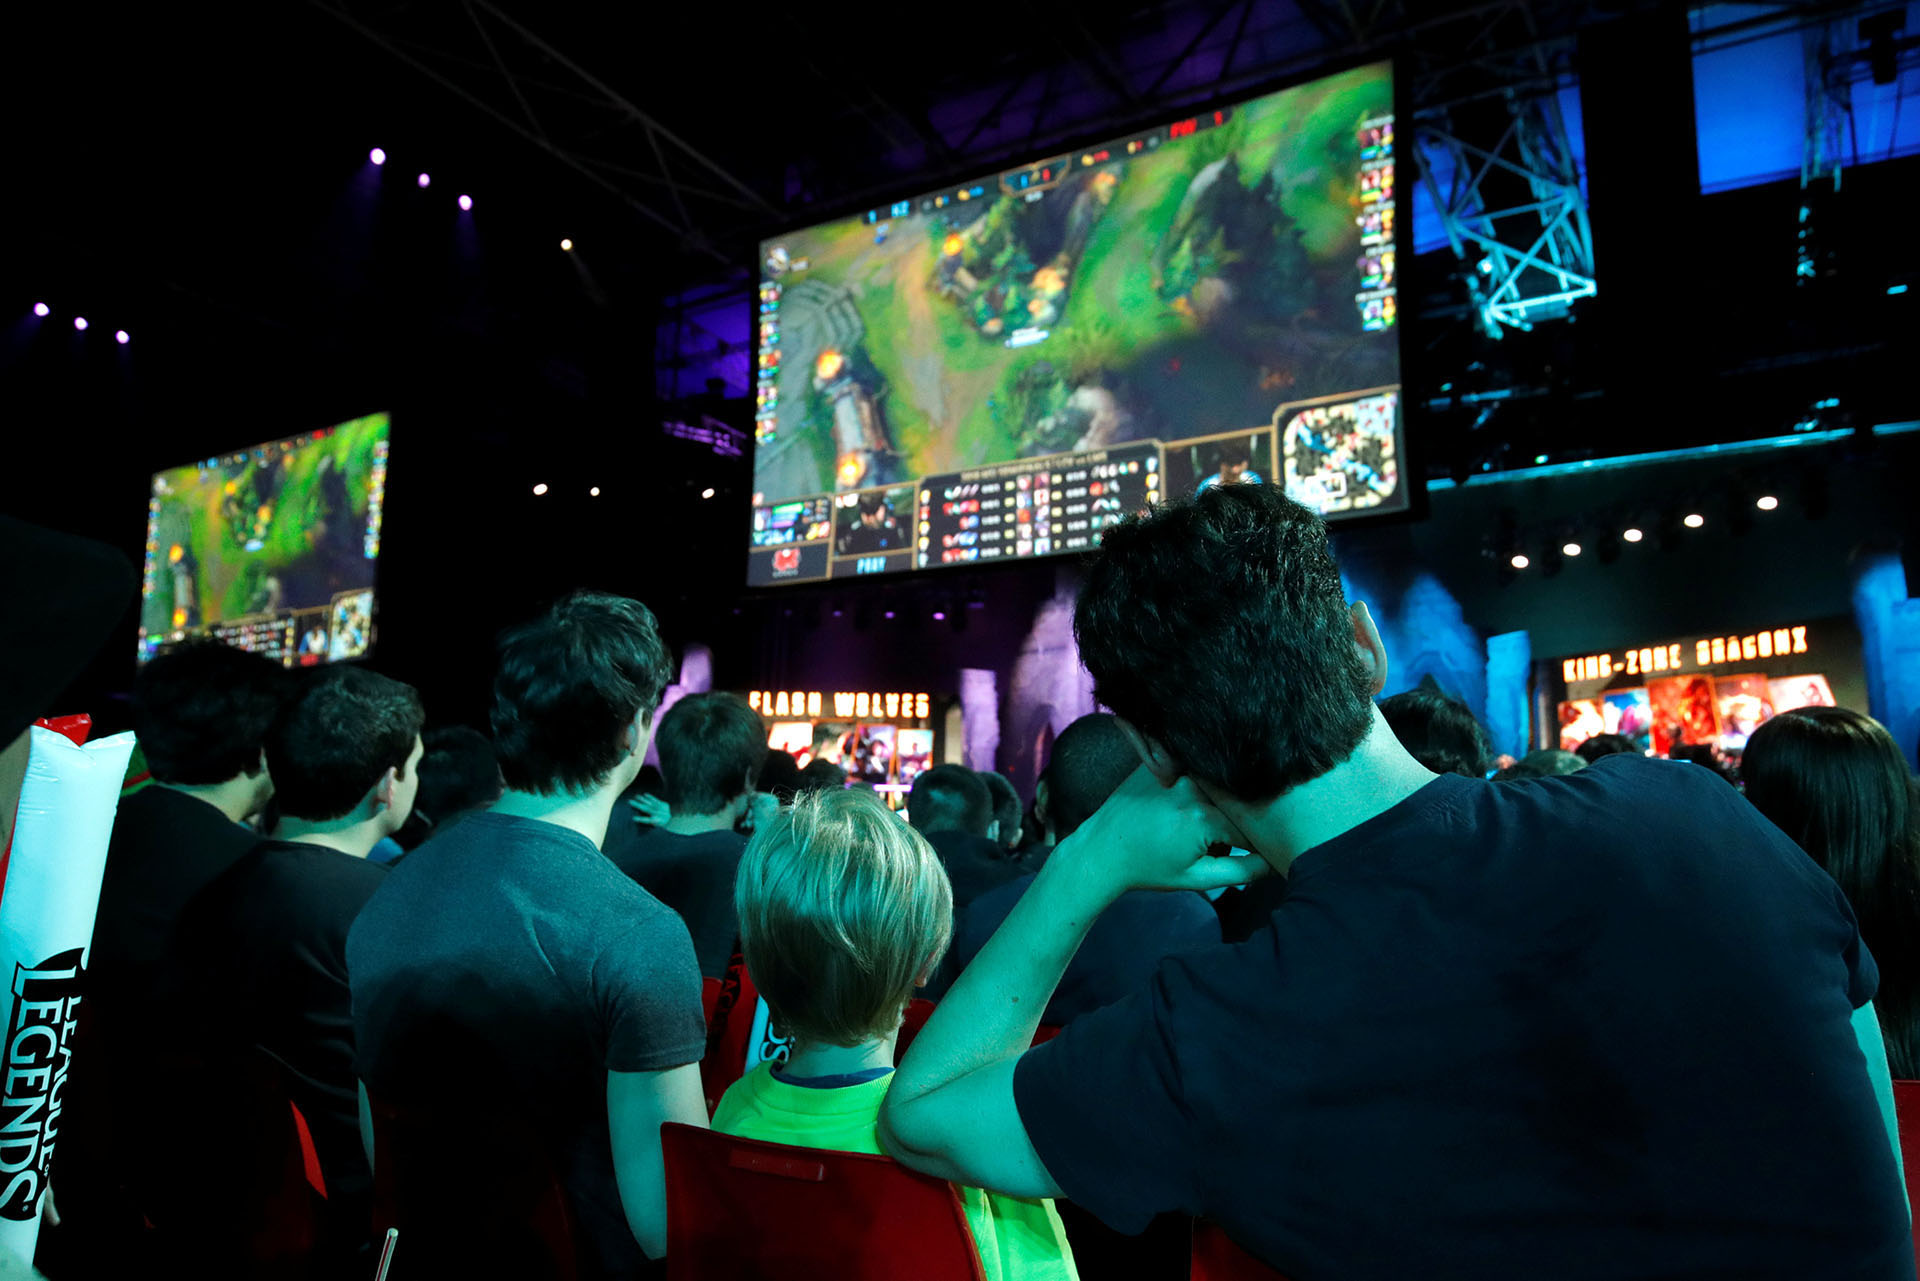 La audiencia sigue atenta el campeonato de League of Legends que se llevó a cabo en mayo de 2018, en París (REUTERS/Philippe Wojazer).